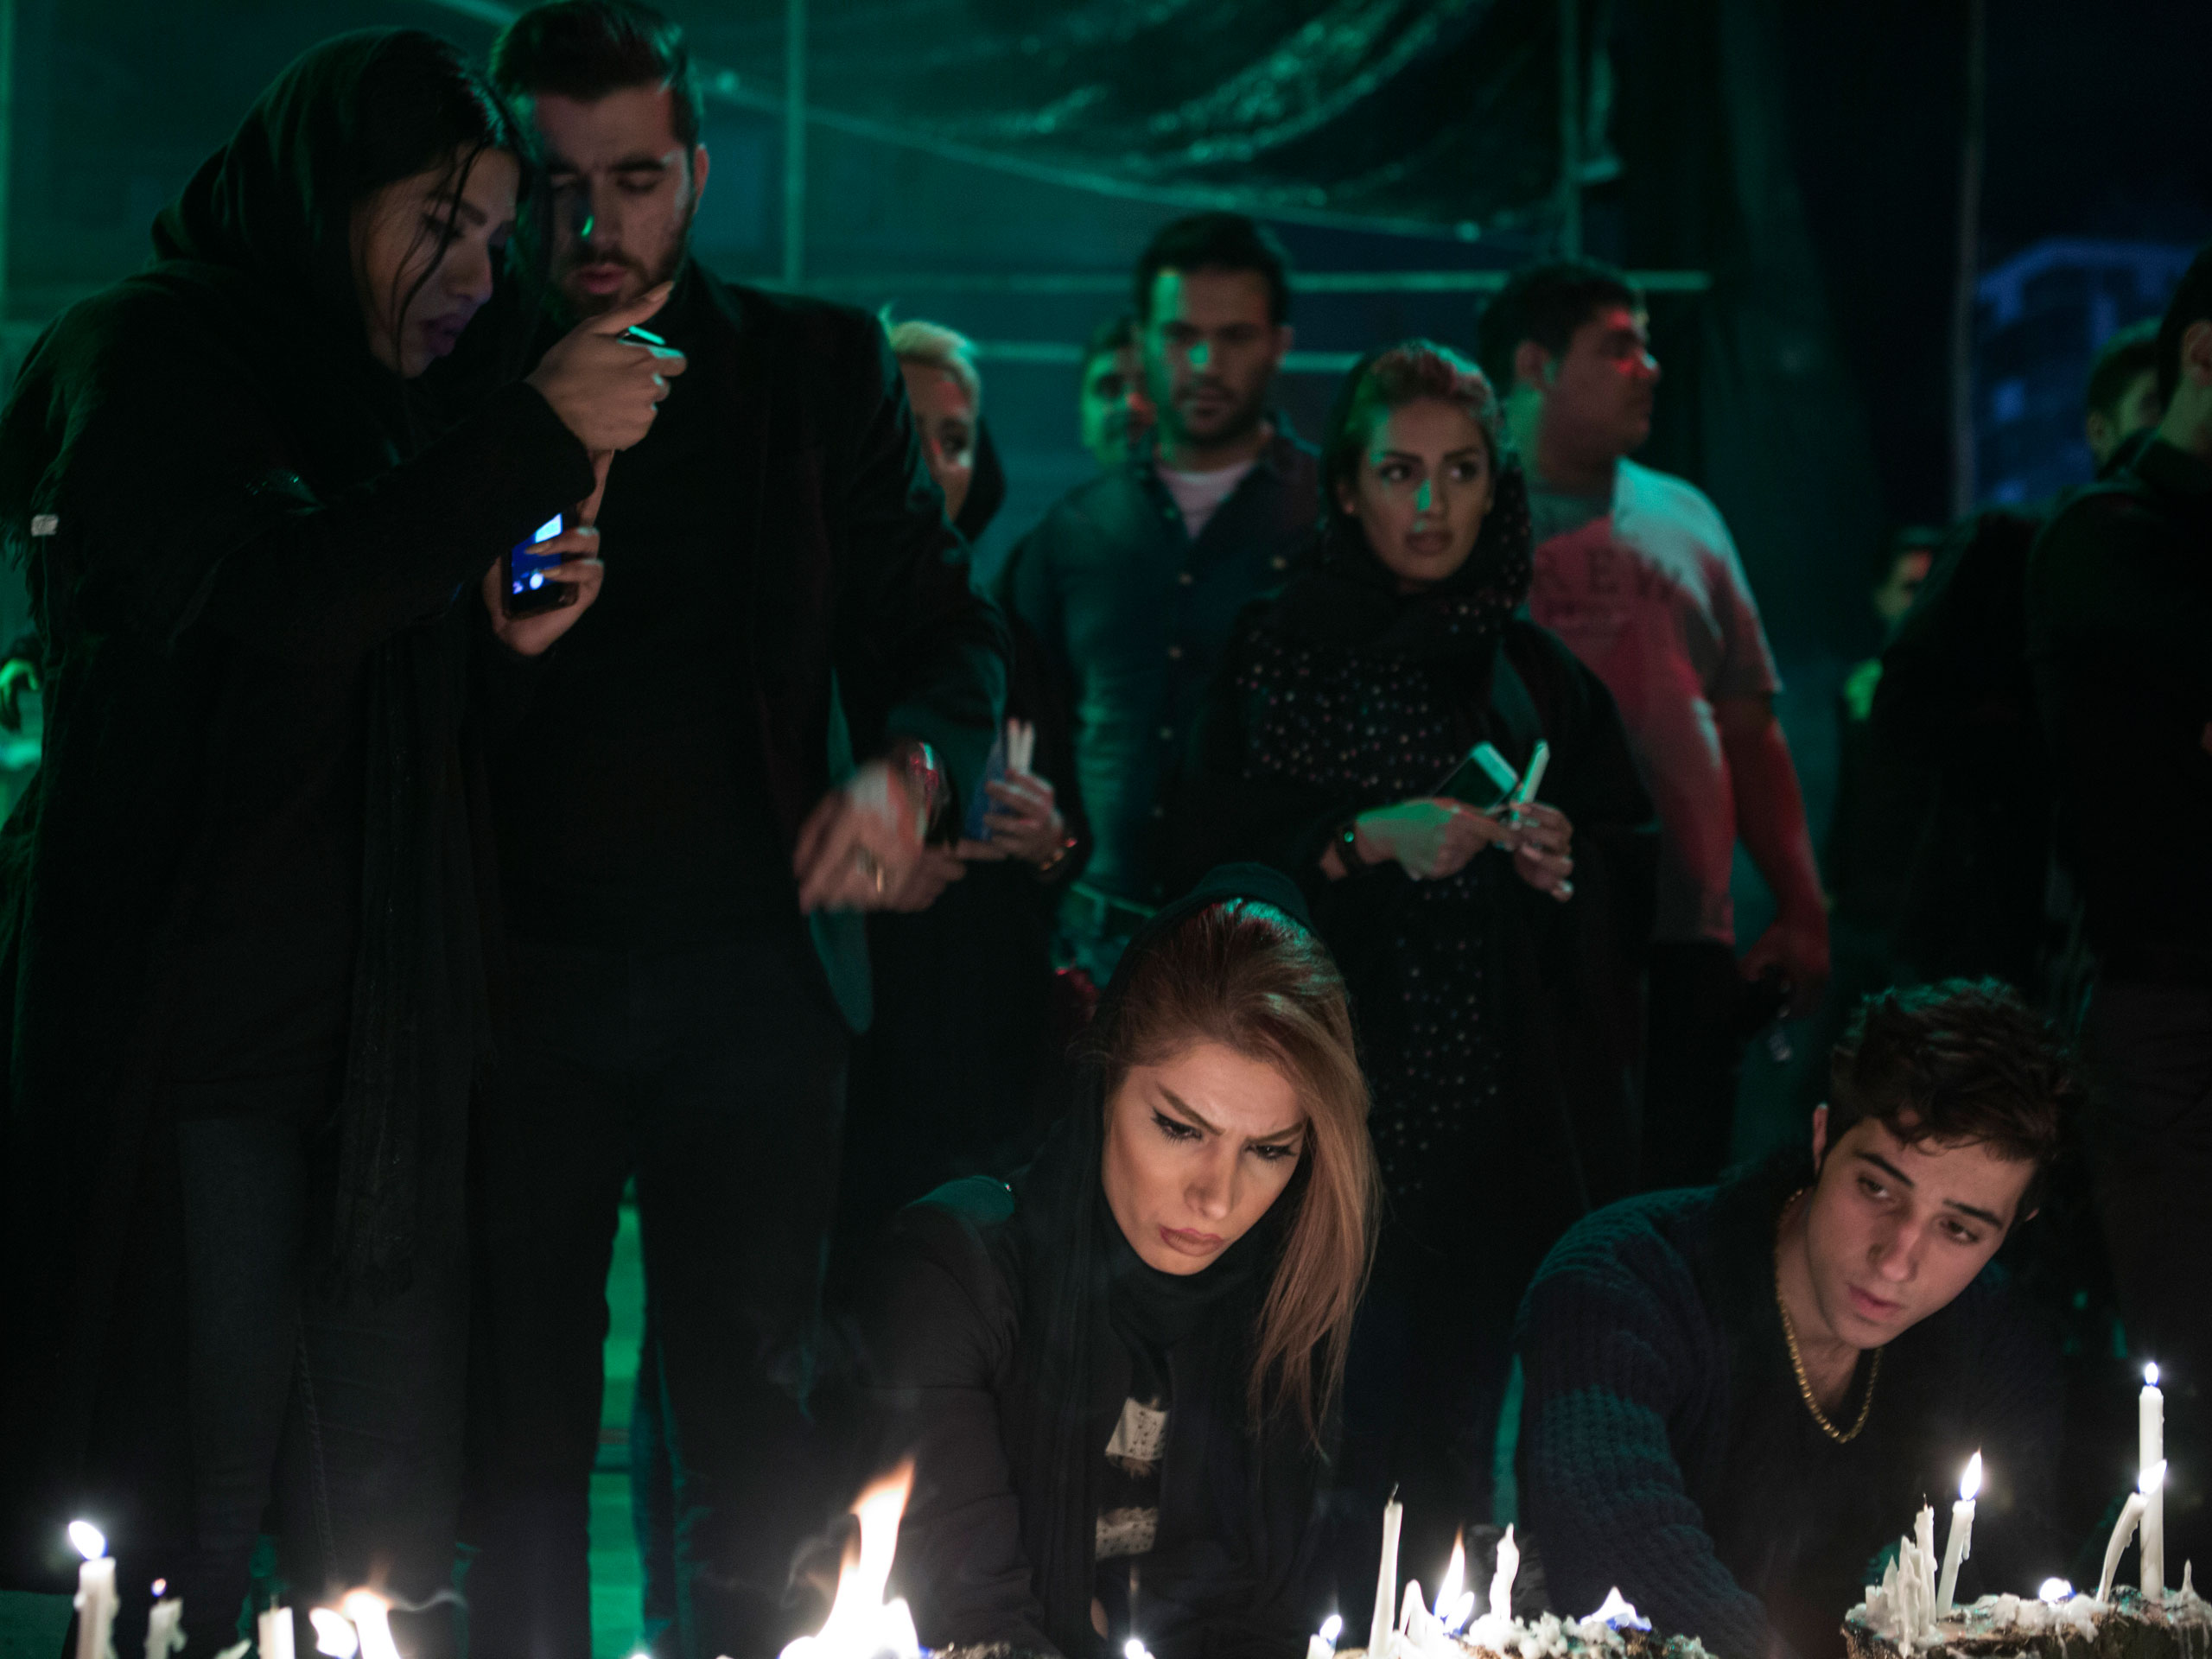 Iranian women light candles to commemorate the death of the revered Shiite martyr, Imam Hussein, grandson of the  Prophet Mohammad.                               His violent death on the plains of Kerbala, Iraq, is remembered during the mourning period known as Ashura.